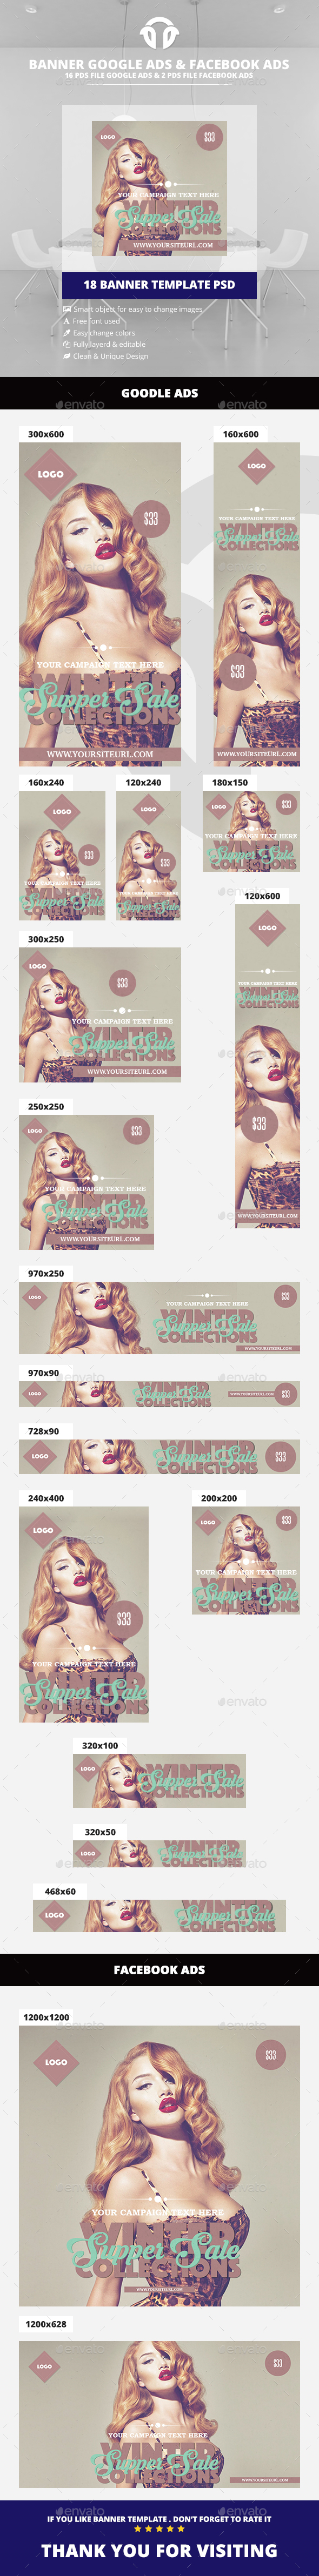 Vintage / Retro Fashion Ads - Banners & Ads Web Elements